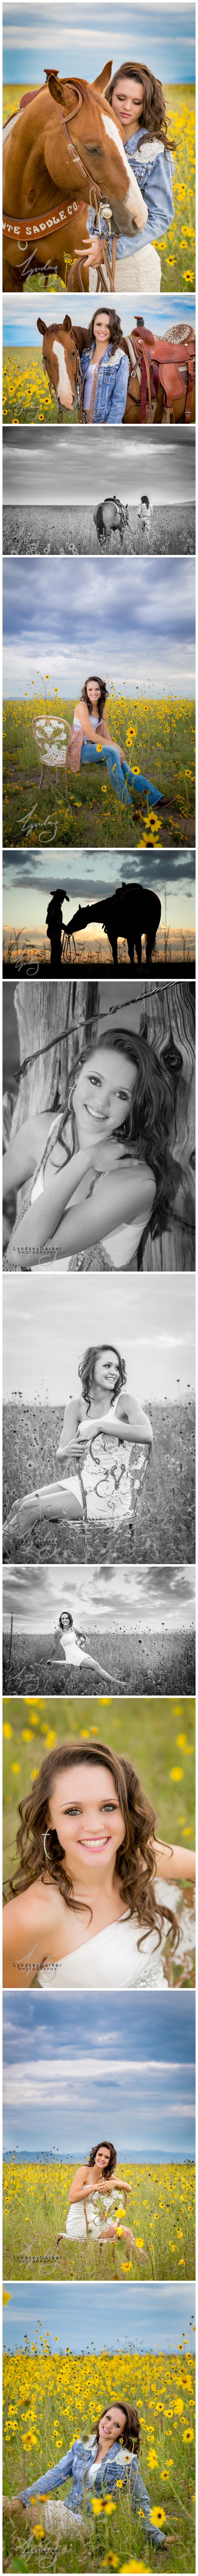 Girl and horse Senior Portrait Photography in the sunflowers! Posing and outfit ideas and inspiration. http://www.lyndseygarberphotography.com/kadie-new-mexico-senior-photography/